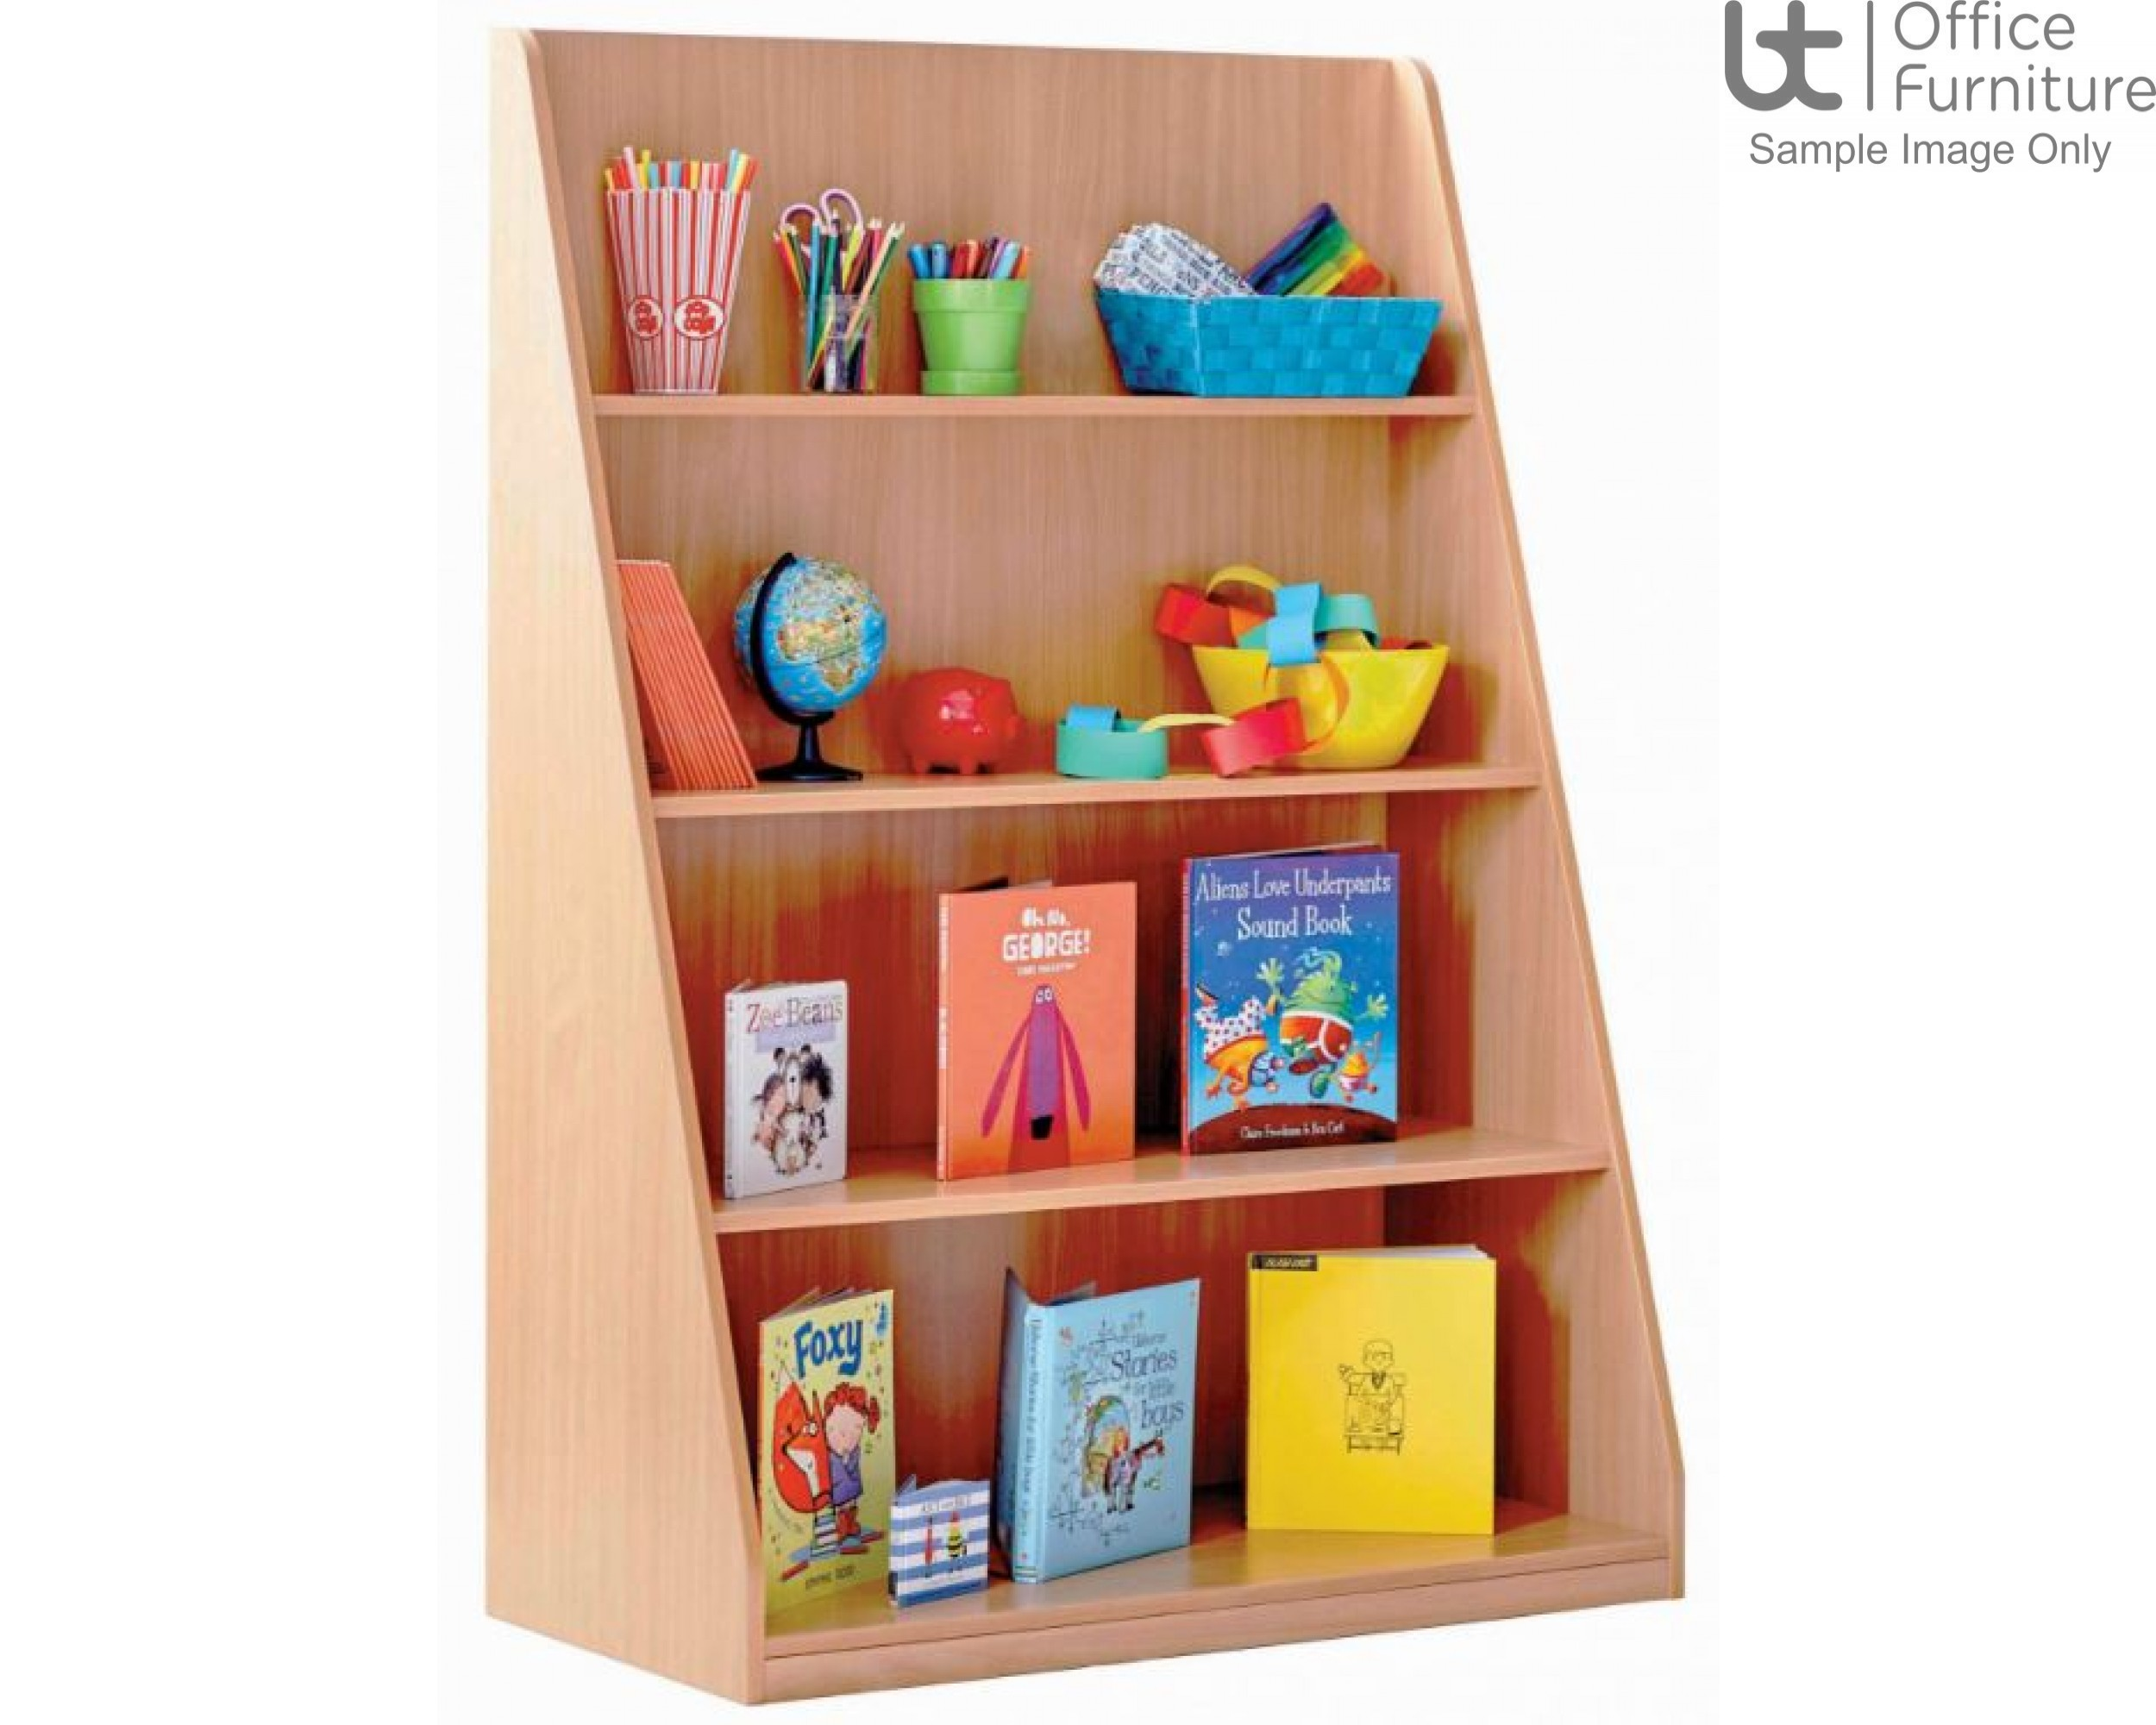 School Book Storage - Library unit, single sided with 4 fixed shelves at different depths, angled and curved side panels, static